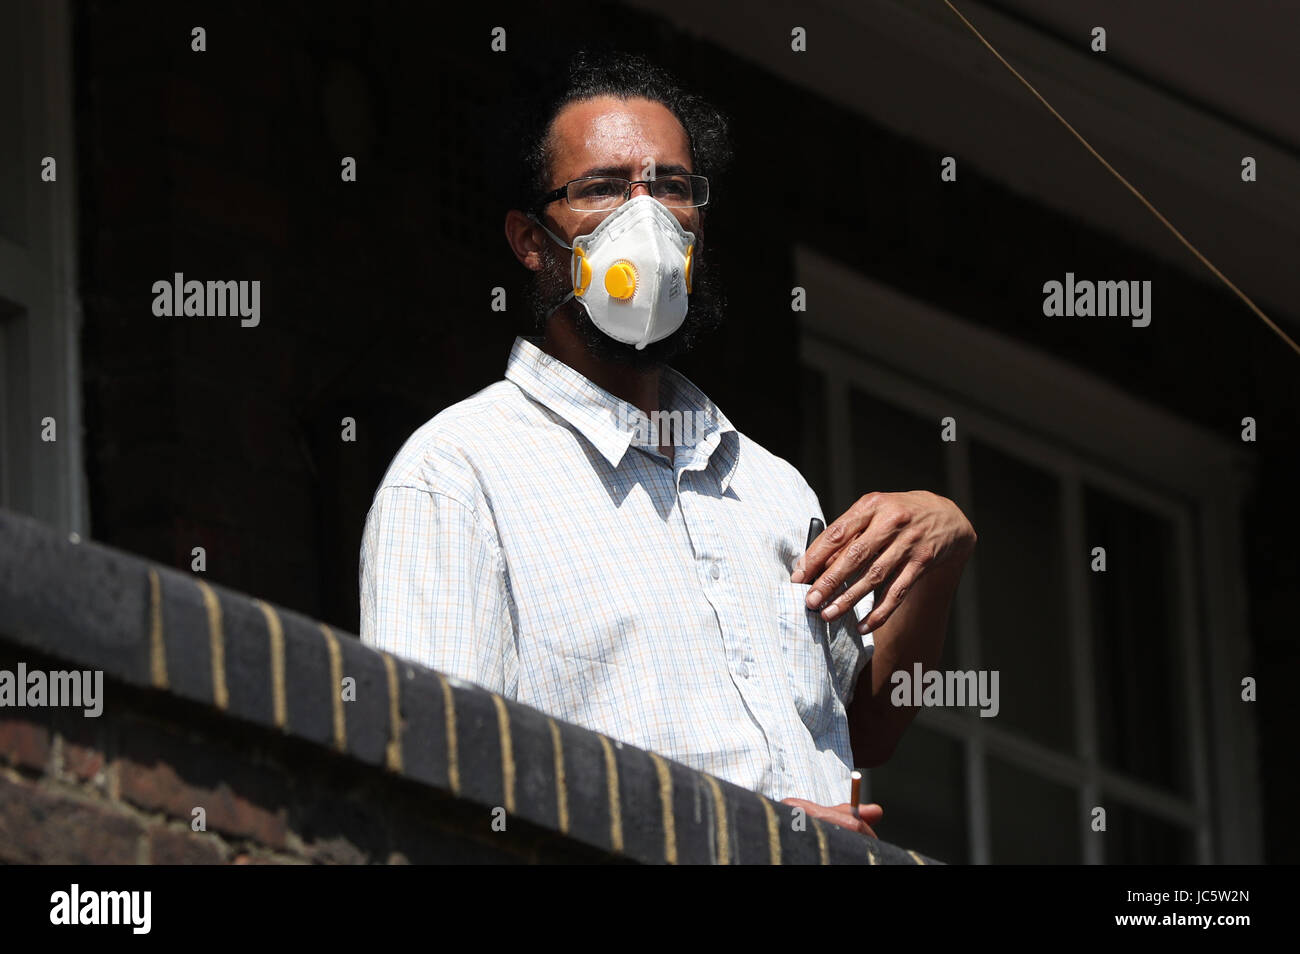 A man wearing a face mask looks on from Bramley House, a building close to the scene of a fire that has engulfed - Stock Image